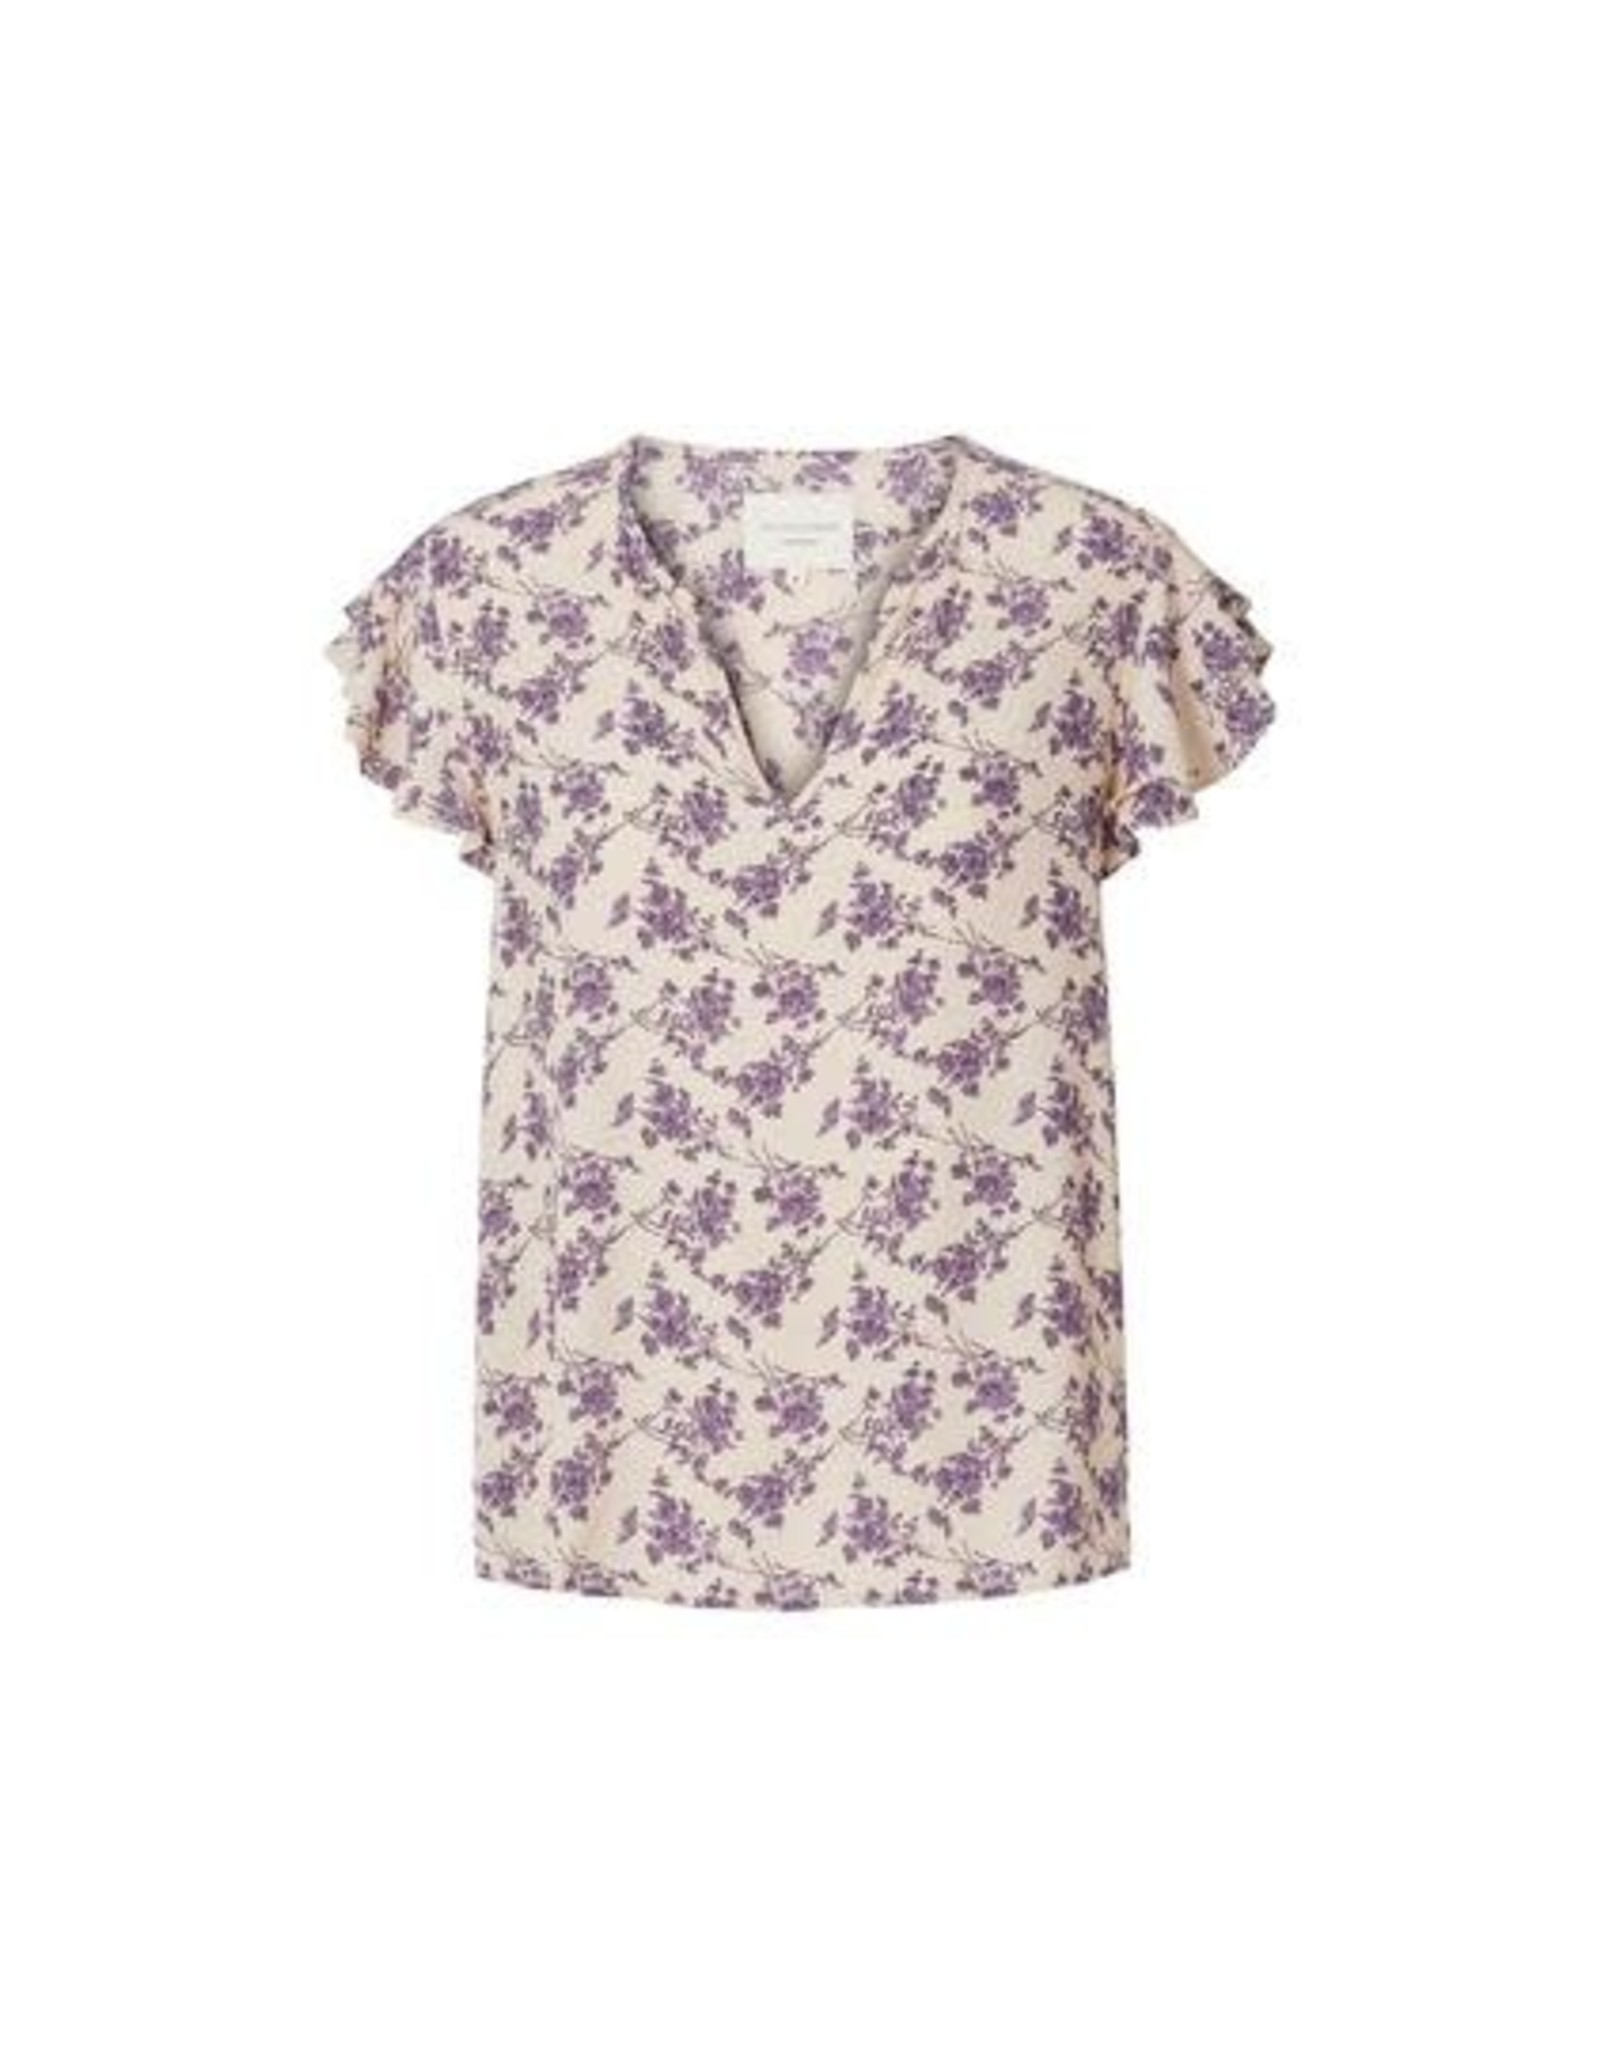 Lolly's Laundry June Top creme